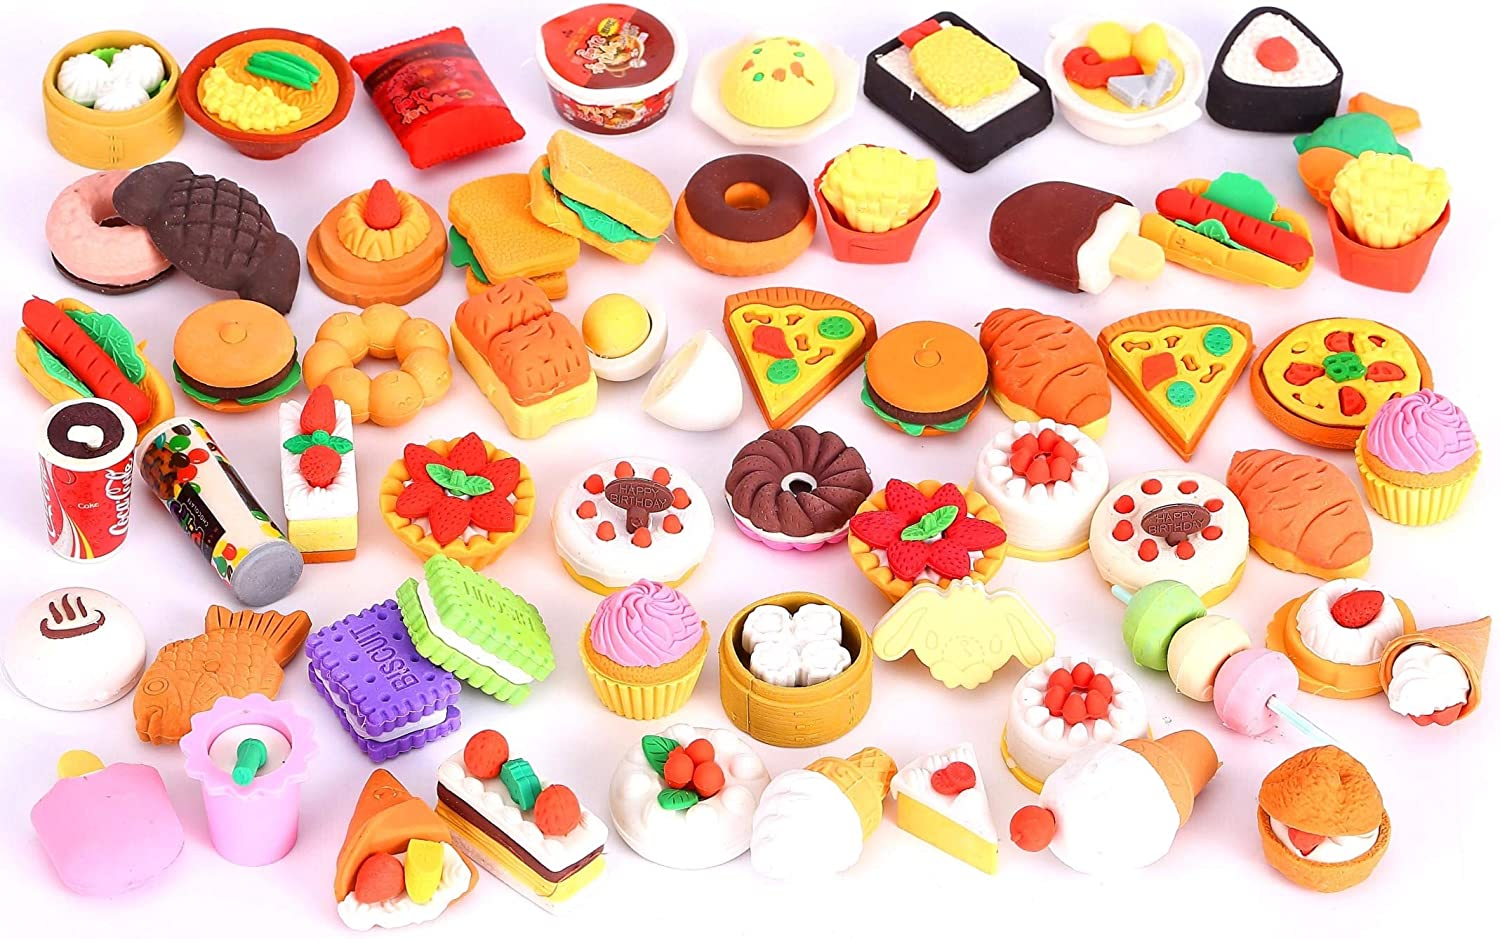 30 PCs Joanna ReidCollectible Set of Adorable Puzzle Sweet Dessert Food Cake Erasers for Kids - No Duplicates - Puzzle Toys Best for Party Favors-Treasure Box Items for Classroom